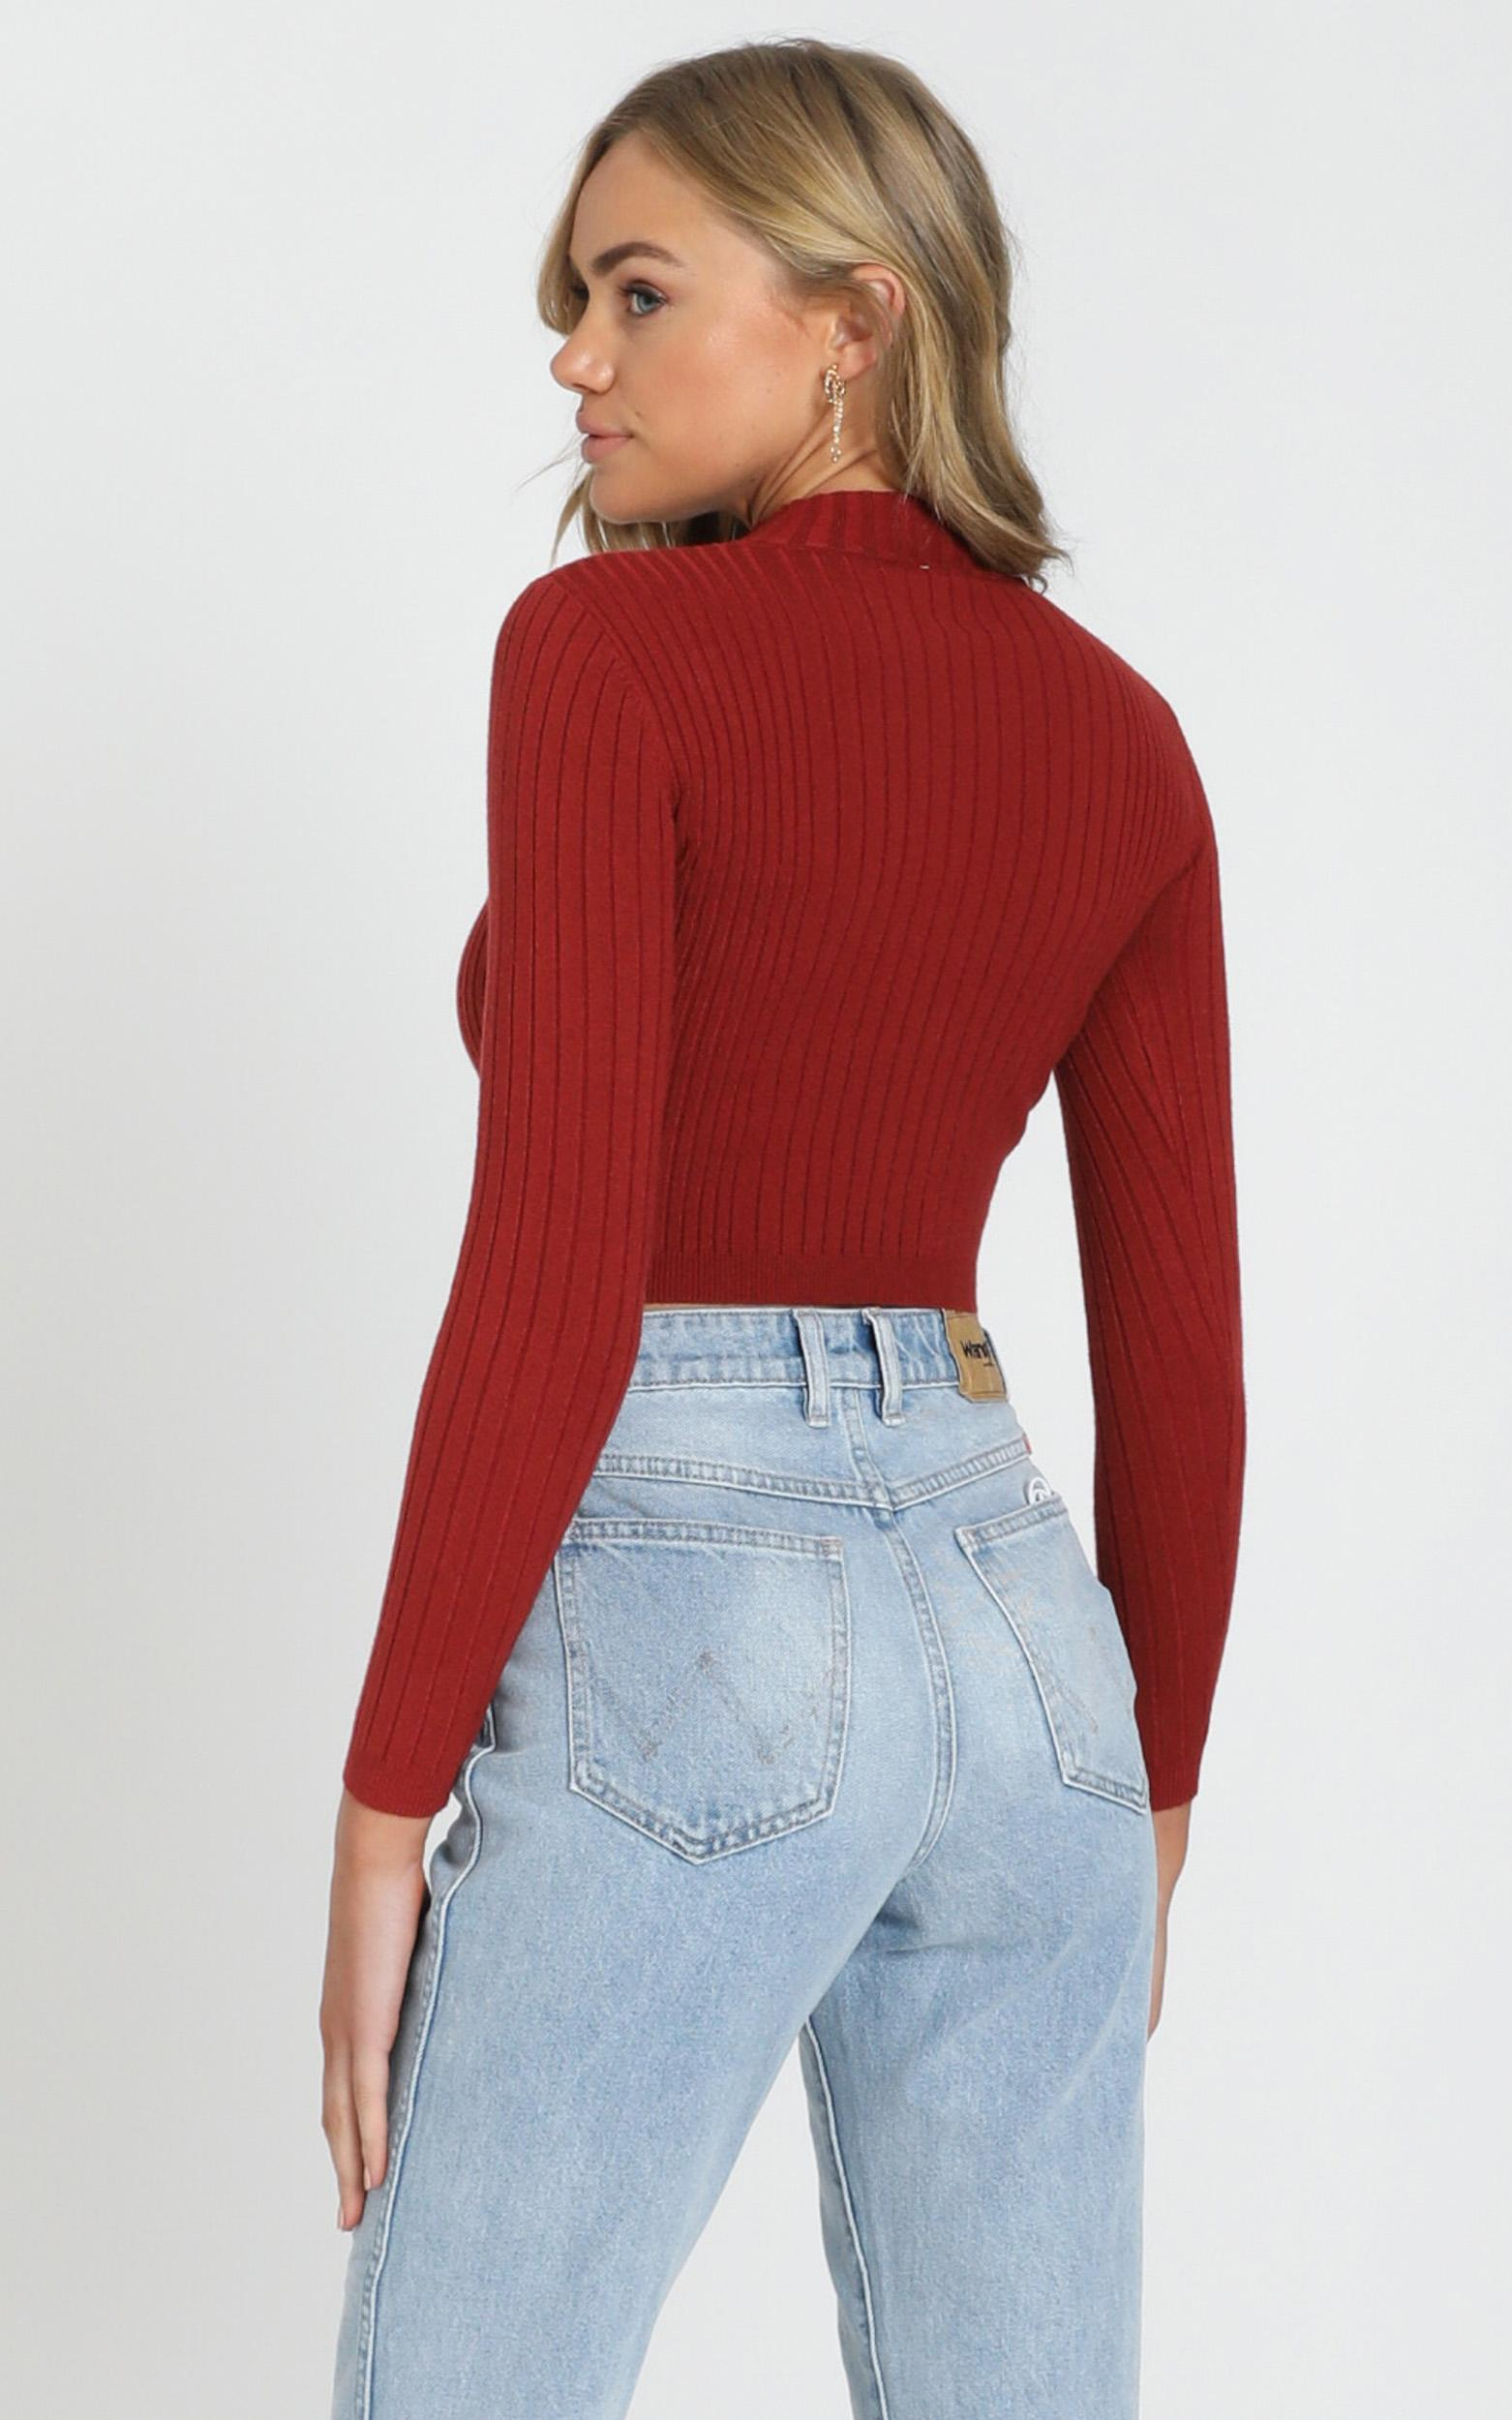 Downtown Dreams knit top in Wine  - 6 (XS), Wine, hi-res image number null